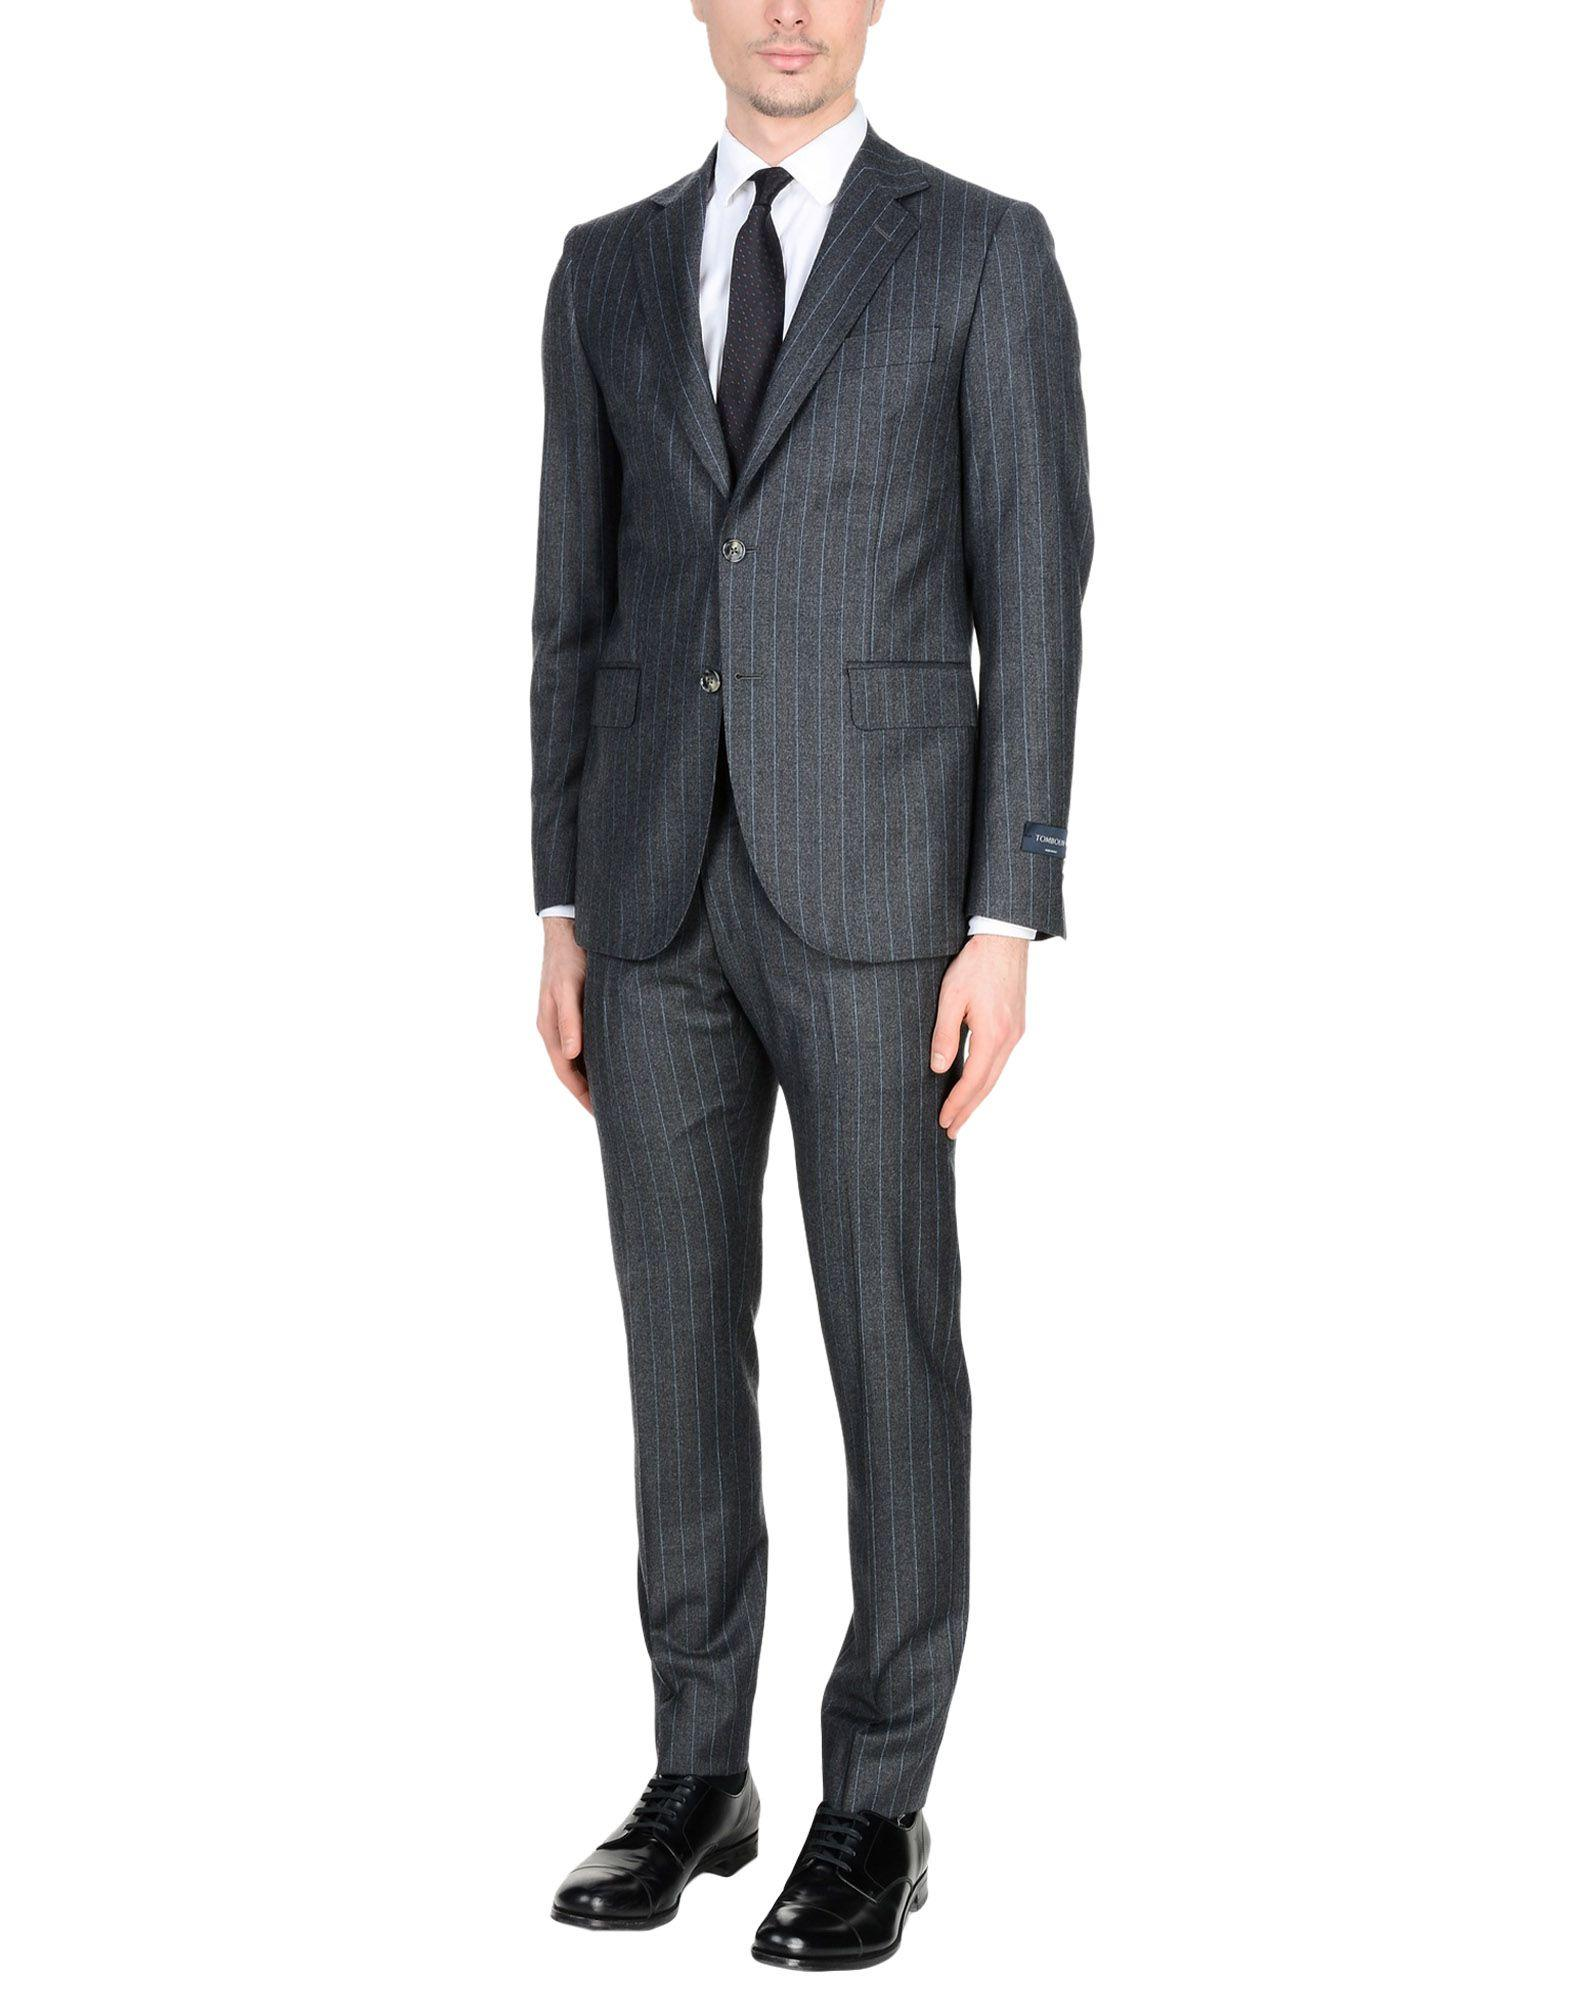 Tombolini Suits In Lead